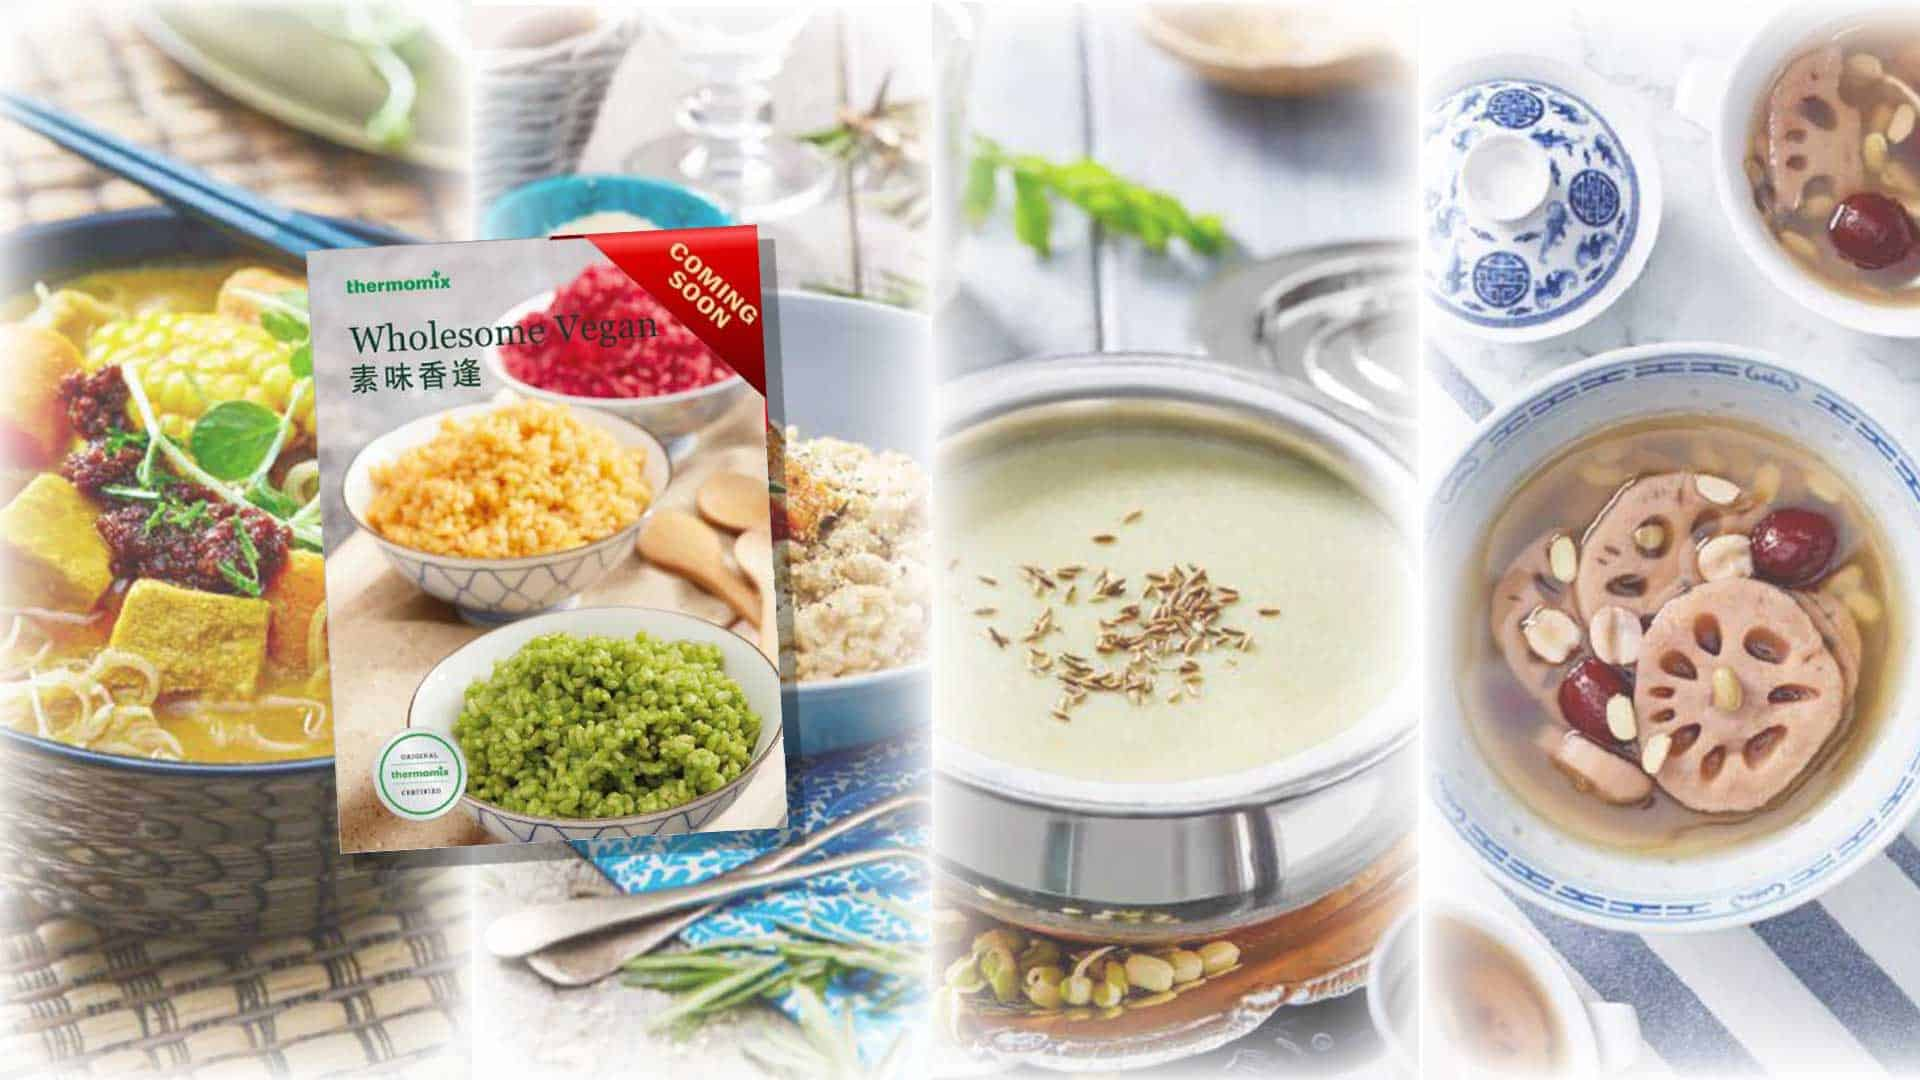 PREORDER NOW! THERMOMIX® WHOLESOME VEGAN!